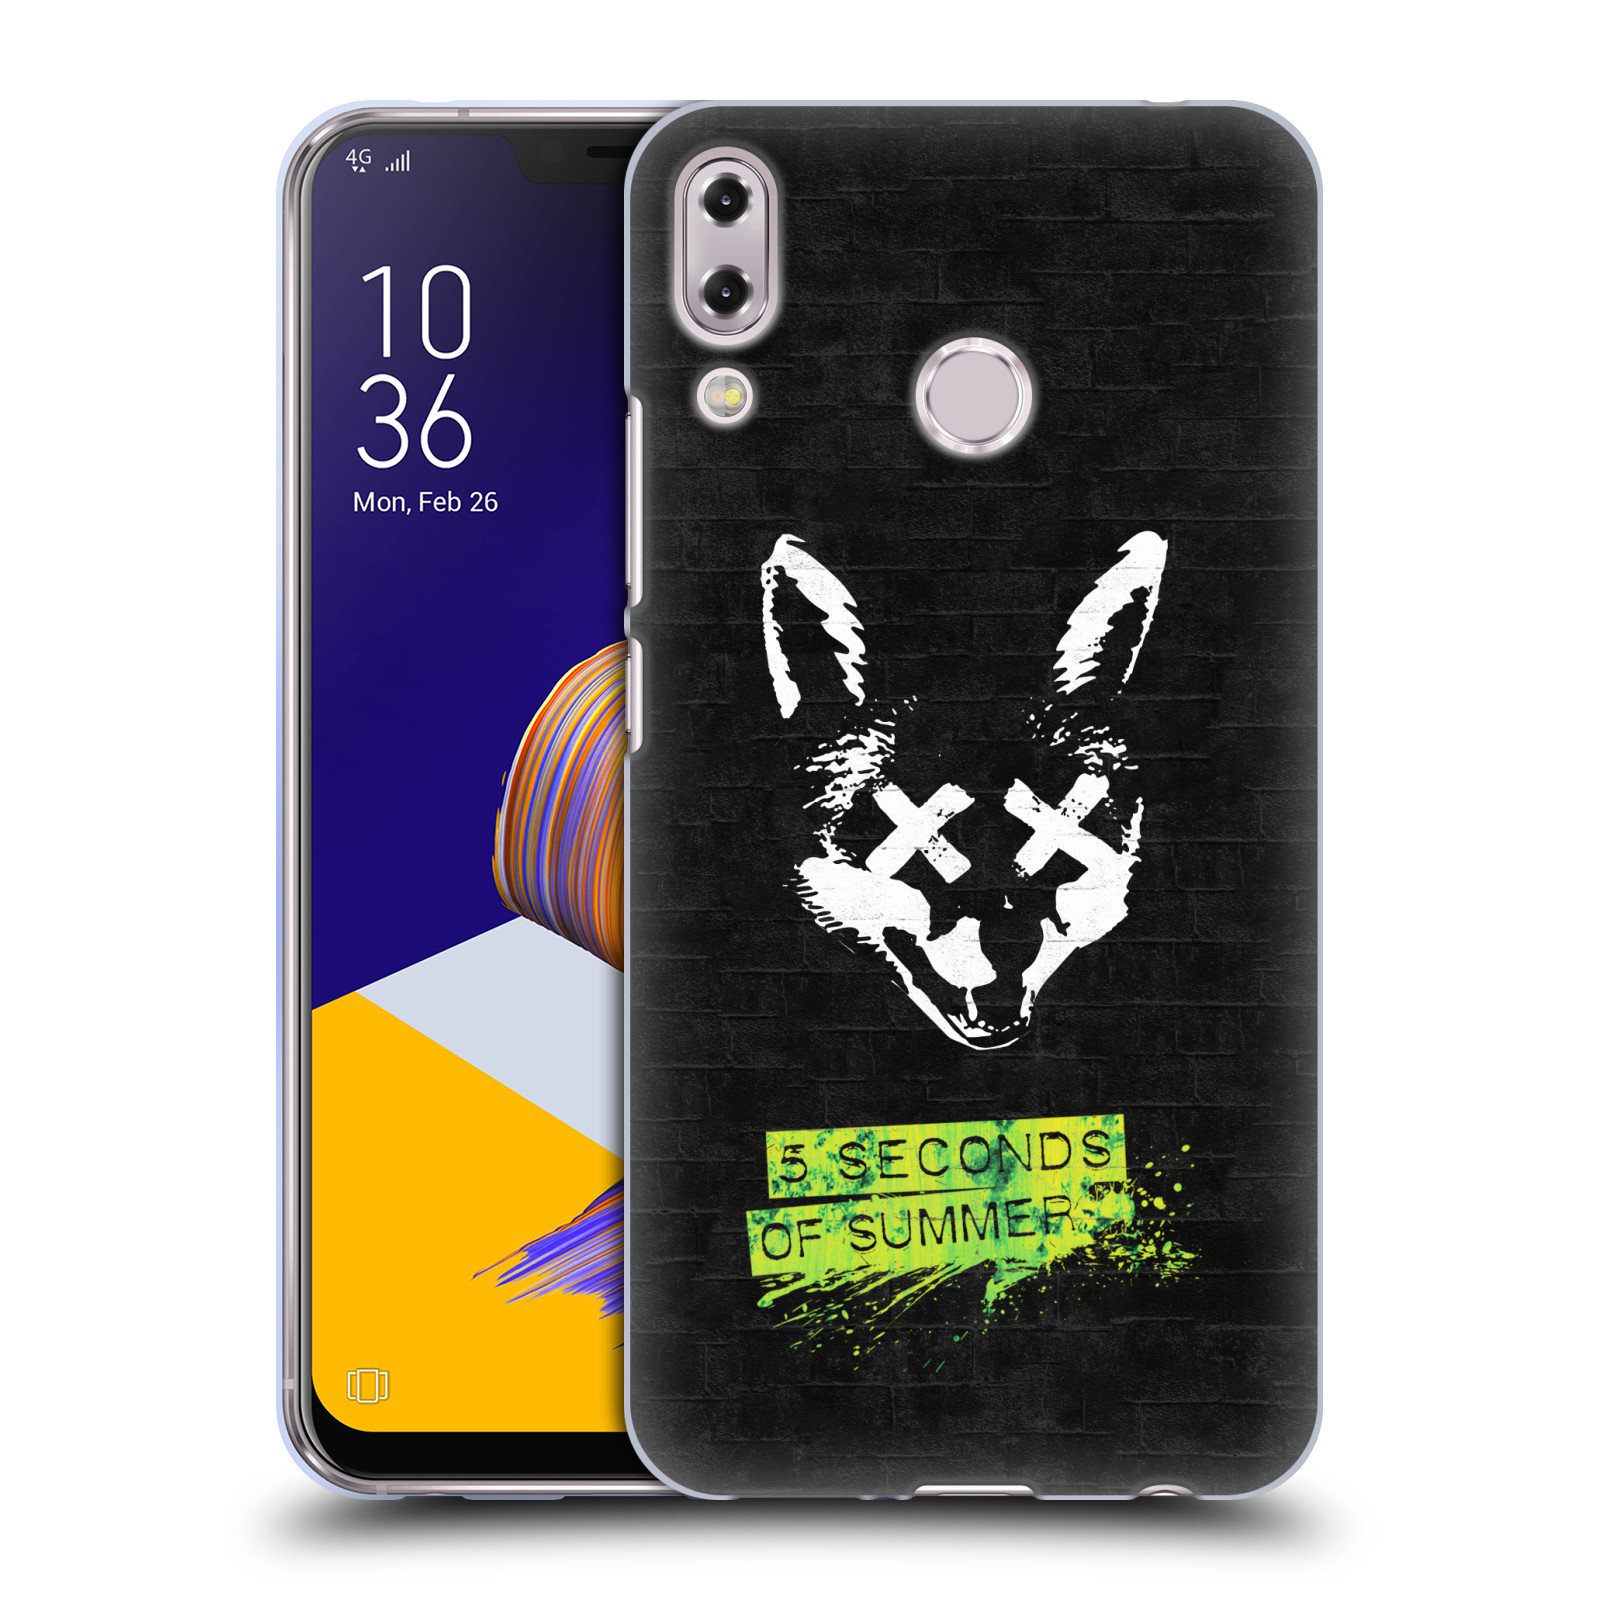 Silikonové pouzdro na mobil Asus ZenFone 5 ZE620KL - Head Case - 5 Seconds of Summer - Fox